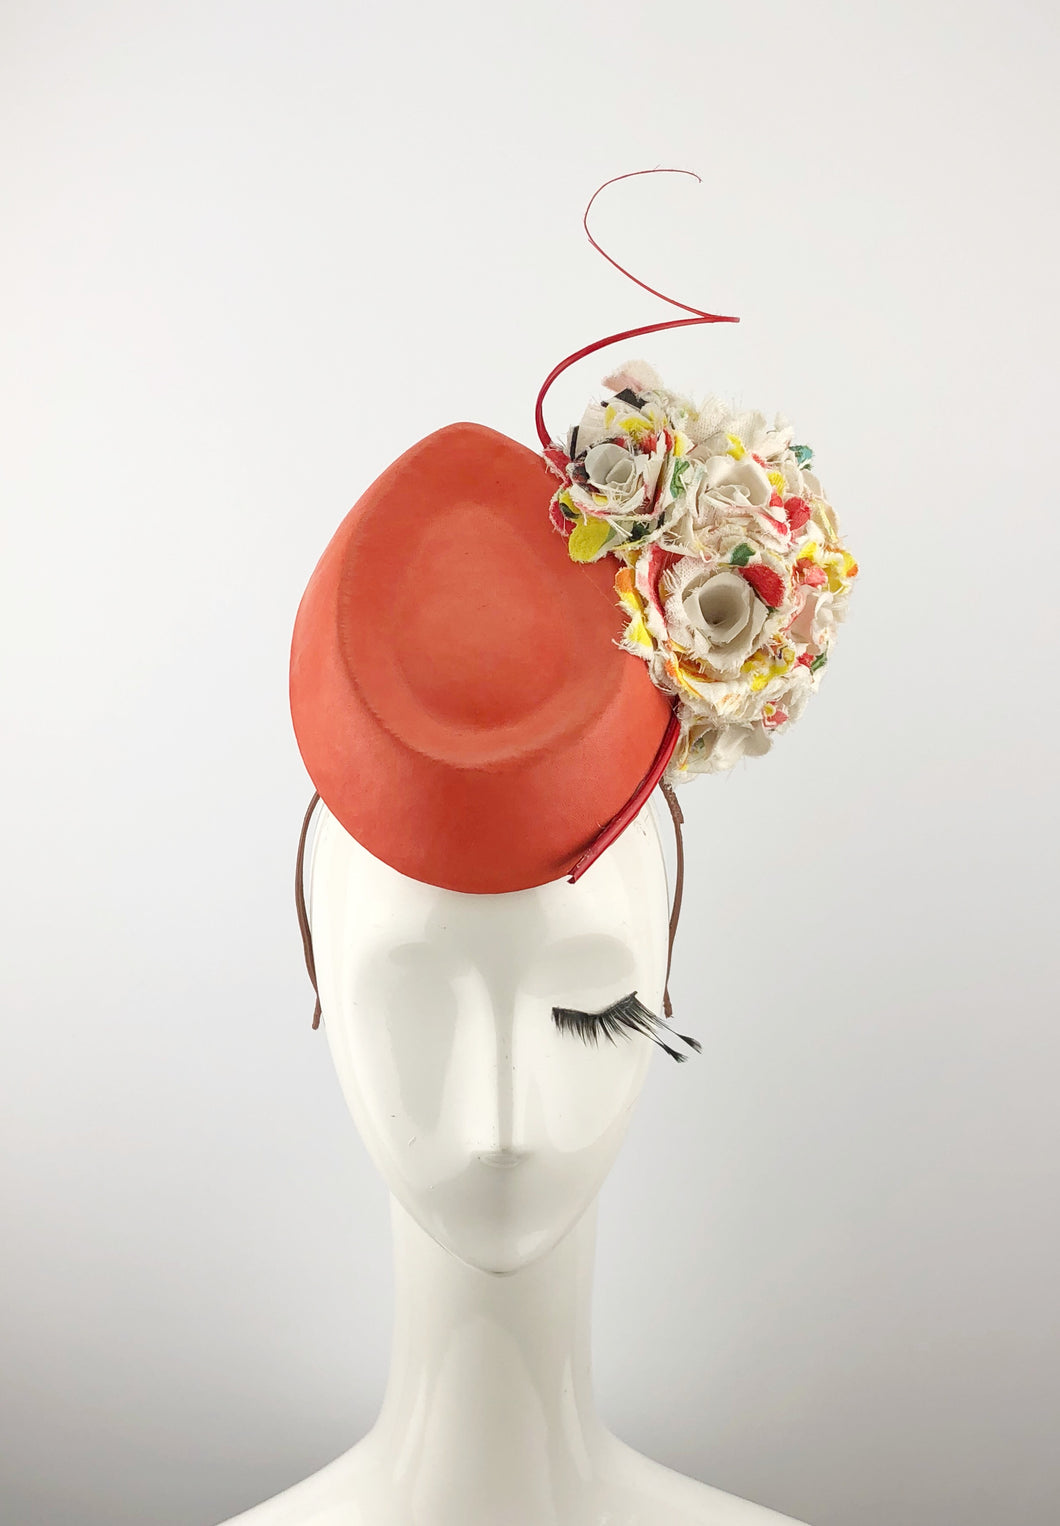 Watermelon Leather Percher